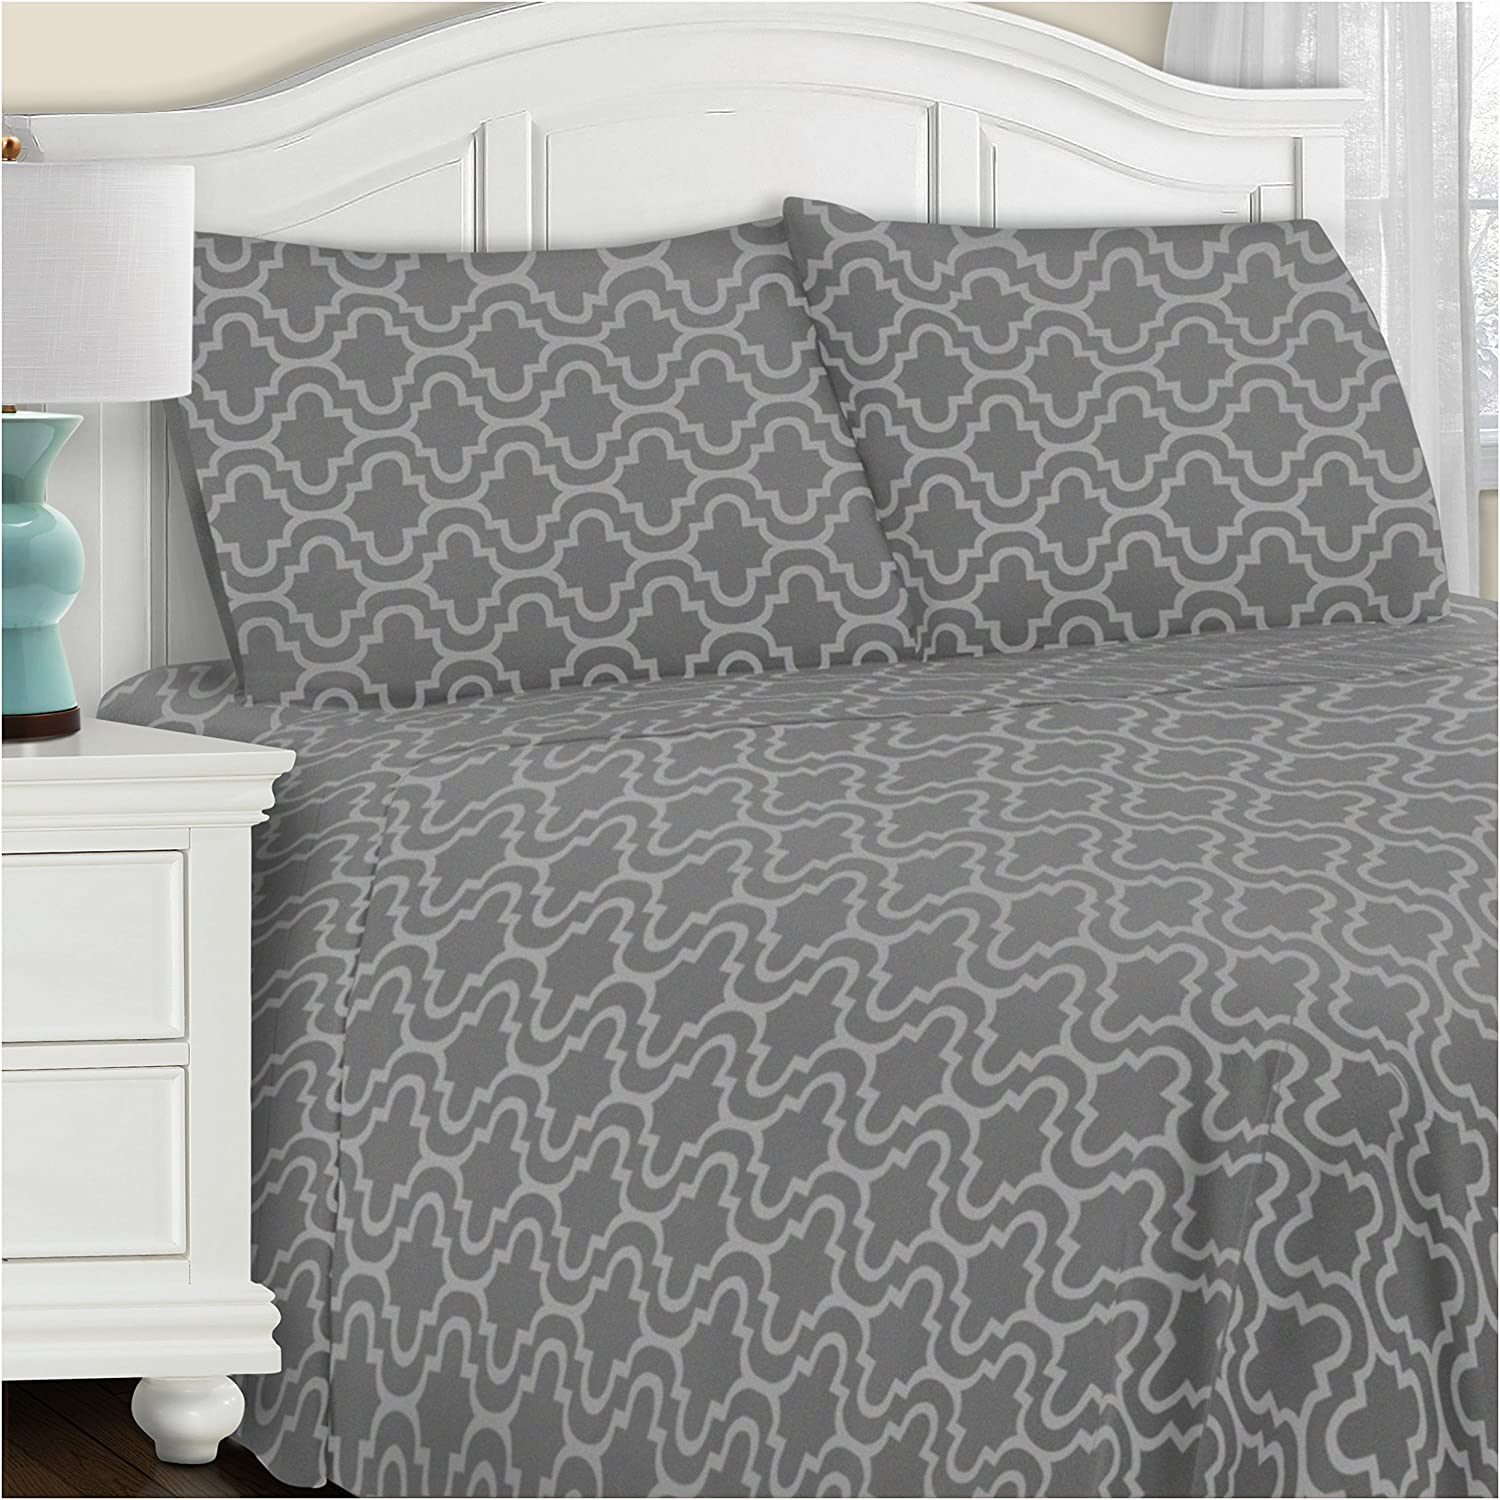 Amazon Com Superior Cotton Flannel Bed Sheet Set Cotton Bed Sheets Deep Pocket Sheets Extra Soft Grey Trellis Full Size Home Kitchen